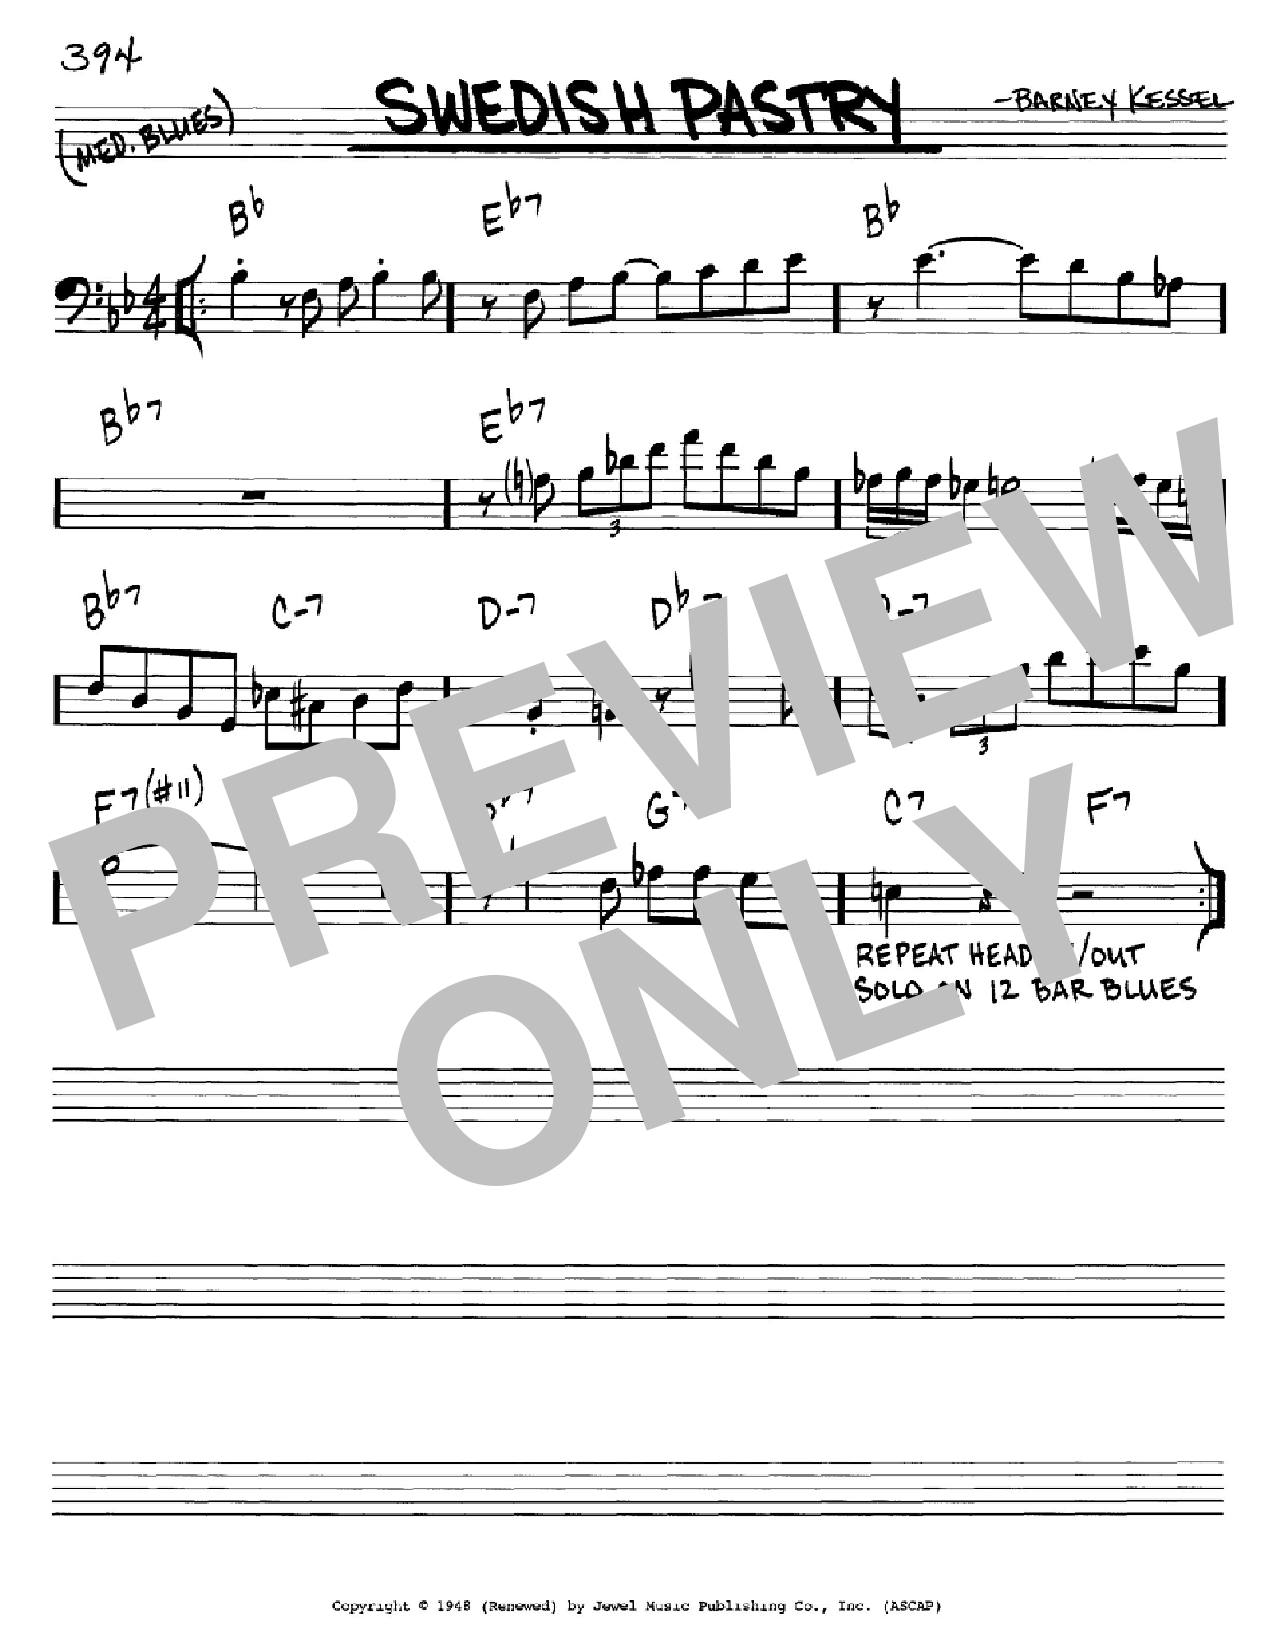 Swedish Pastry Sheet Music